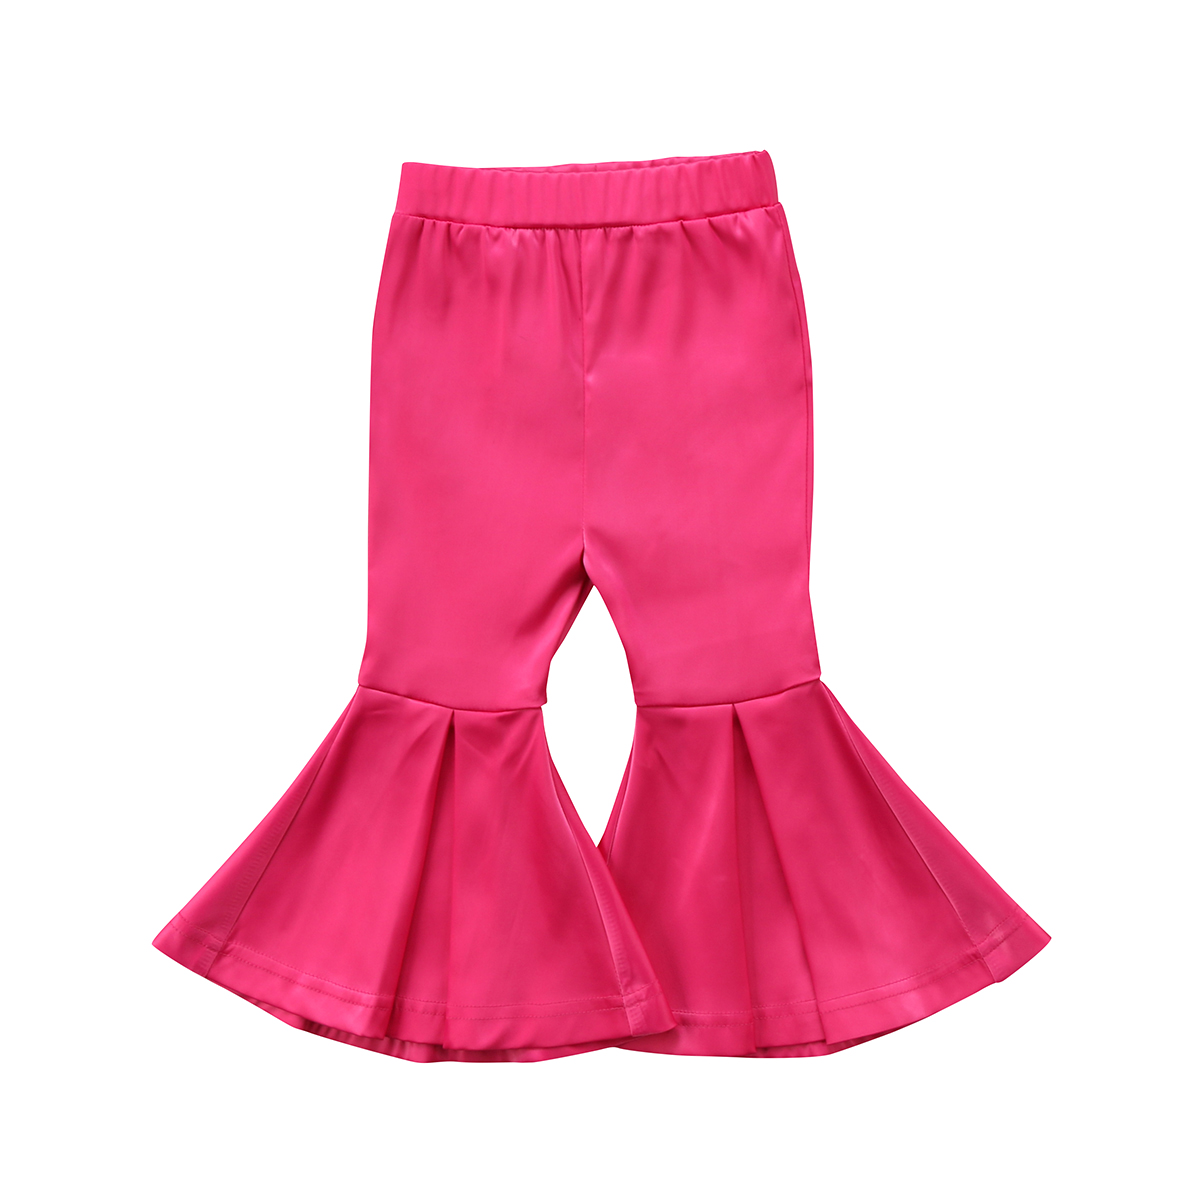 Toddler Kids Girl Baby Pant High Waist Cotton Cute Stretchy Flare Pants Bell Bottom Trousers Girls 2-7Y free shipping new women boot cut jeans girls fashion bell bottom trousers mid waist flares pants size 25 32